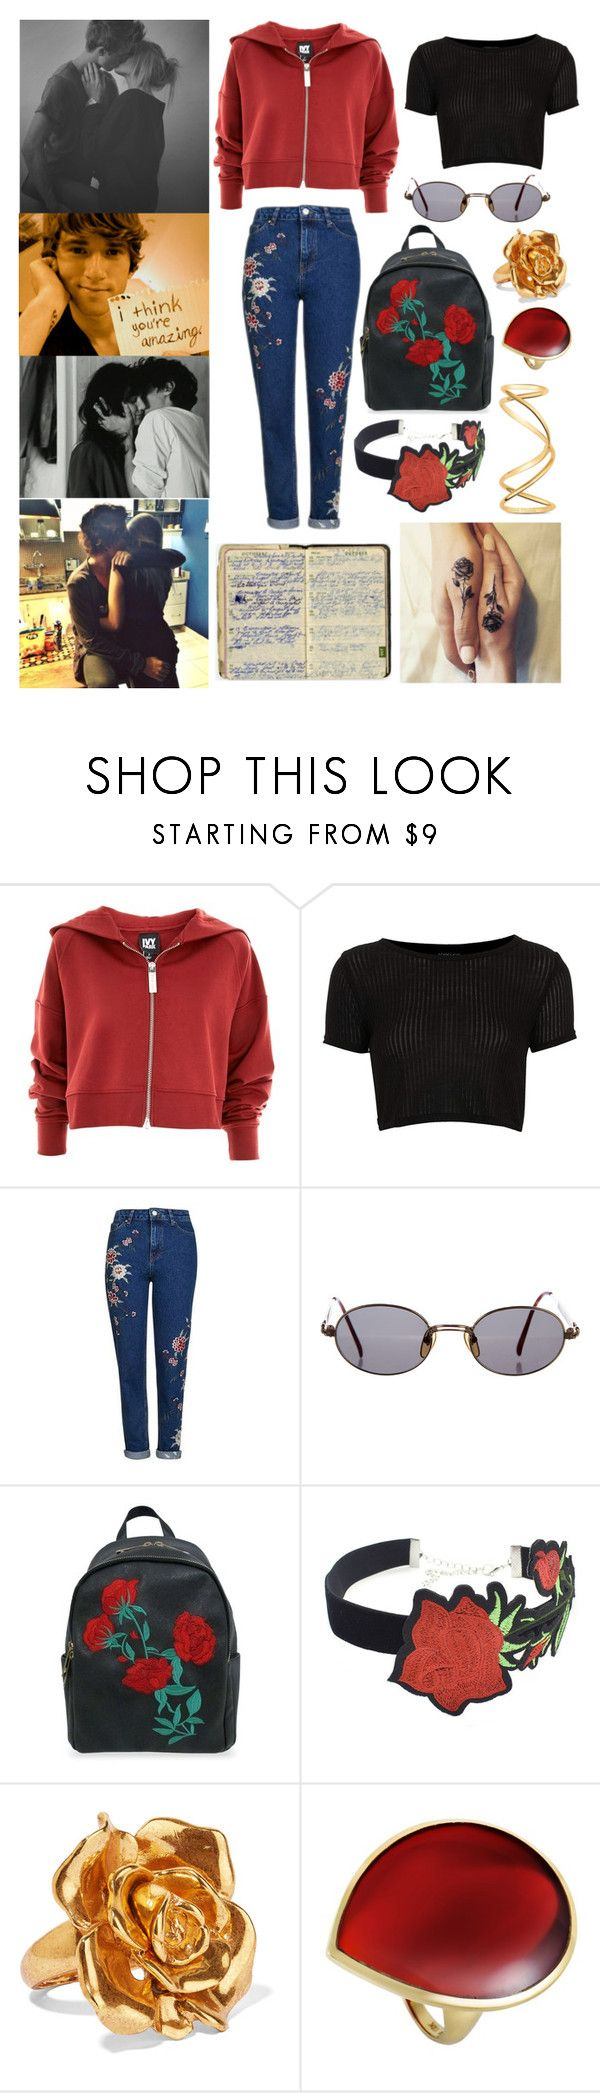 """Love bites (so do I)"" by bellescott36 ❤ liked on Polyvore featuring ...Lost, Topshop, Jean-Paul Gaultier, WithChic, Oscar de la Renta, Ippolita and Maison Margiela"